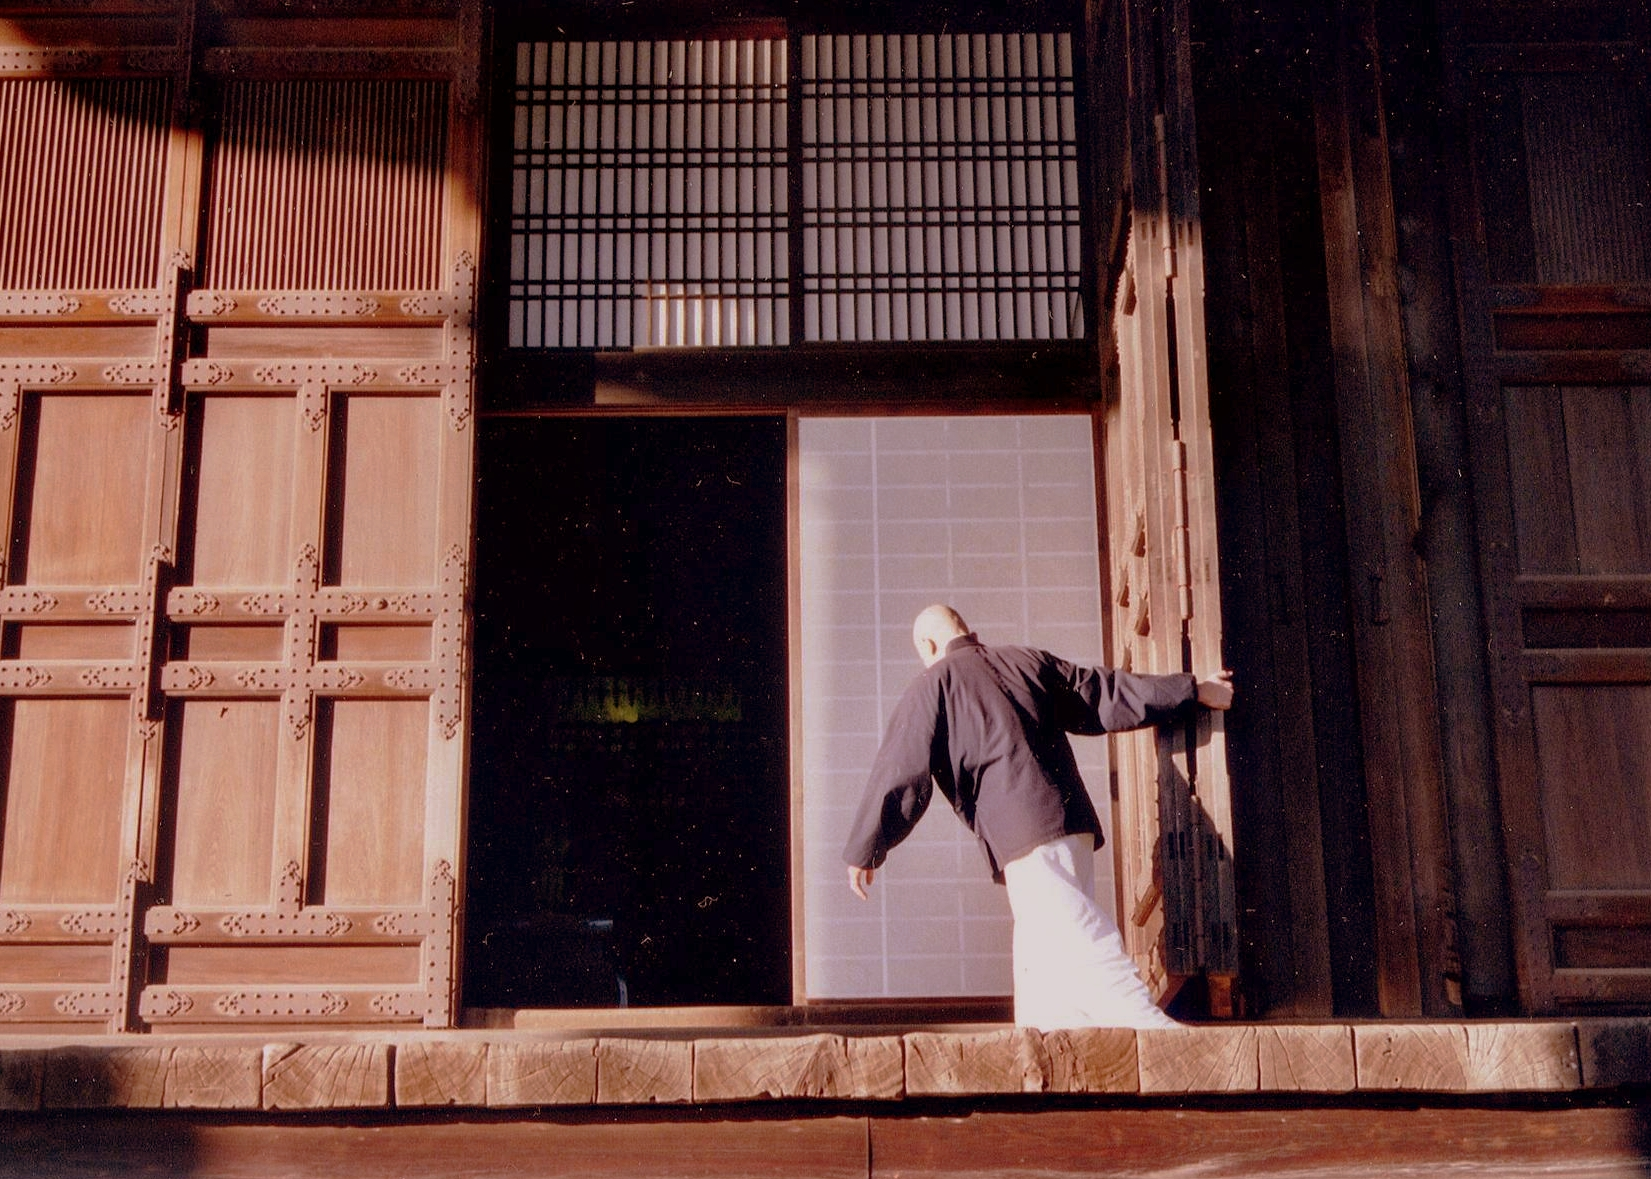 Closing Time at Chion-in Temple. Kyoto.  2003.